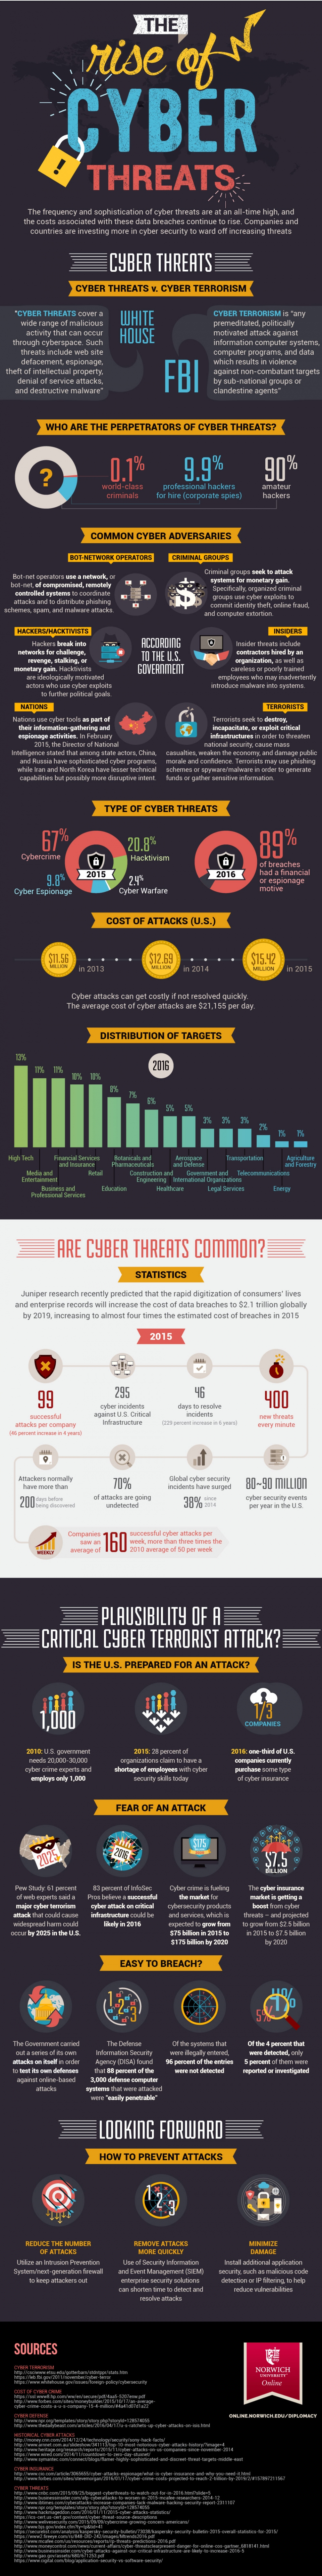 Rise of Cyber Threats Infographic Image